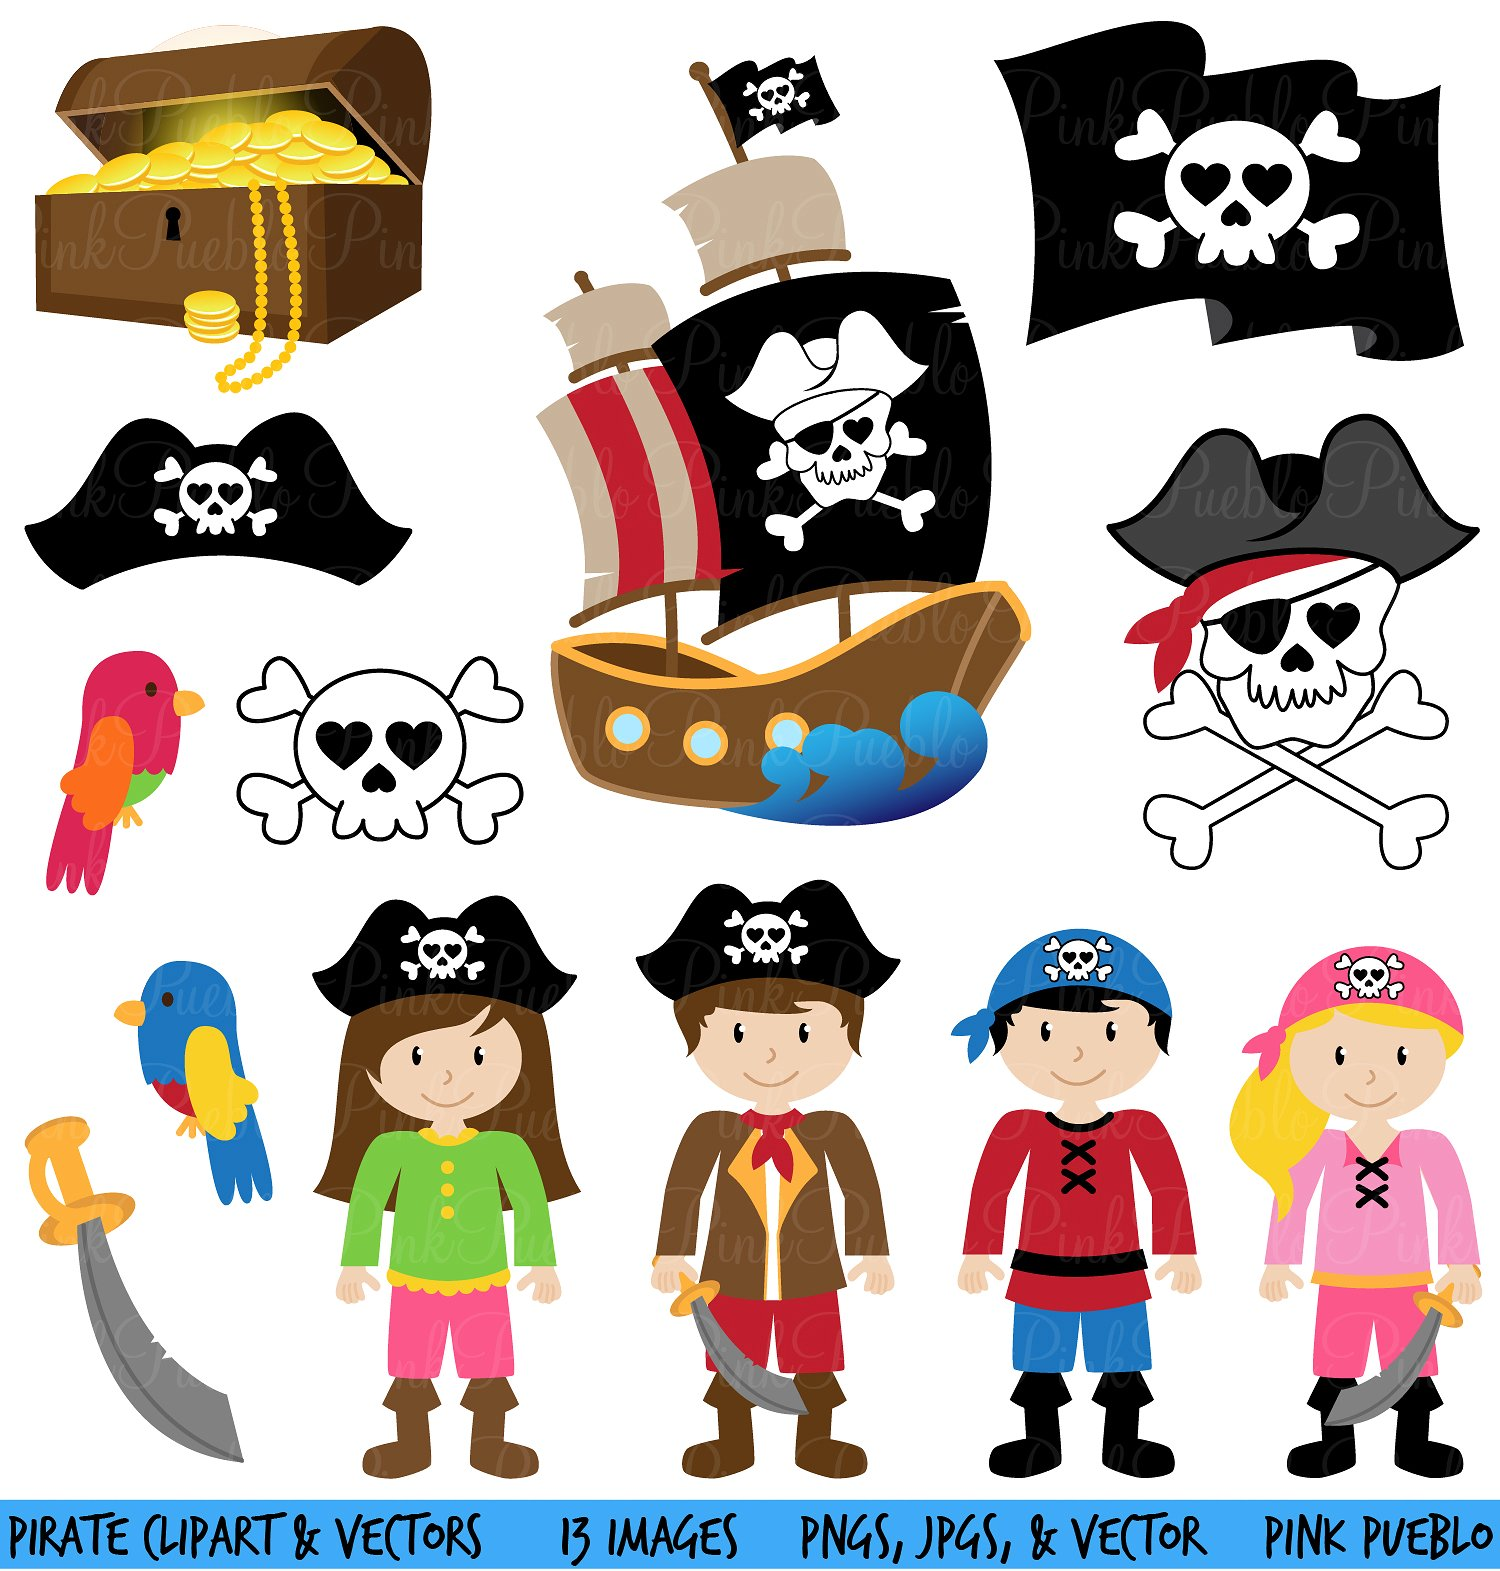 Pirate clipart for kids free vector royalty free Pirate clipart - 113 transparent clip arts, images and ... vector royalty free